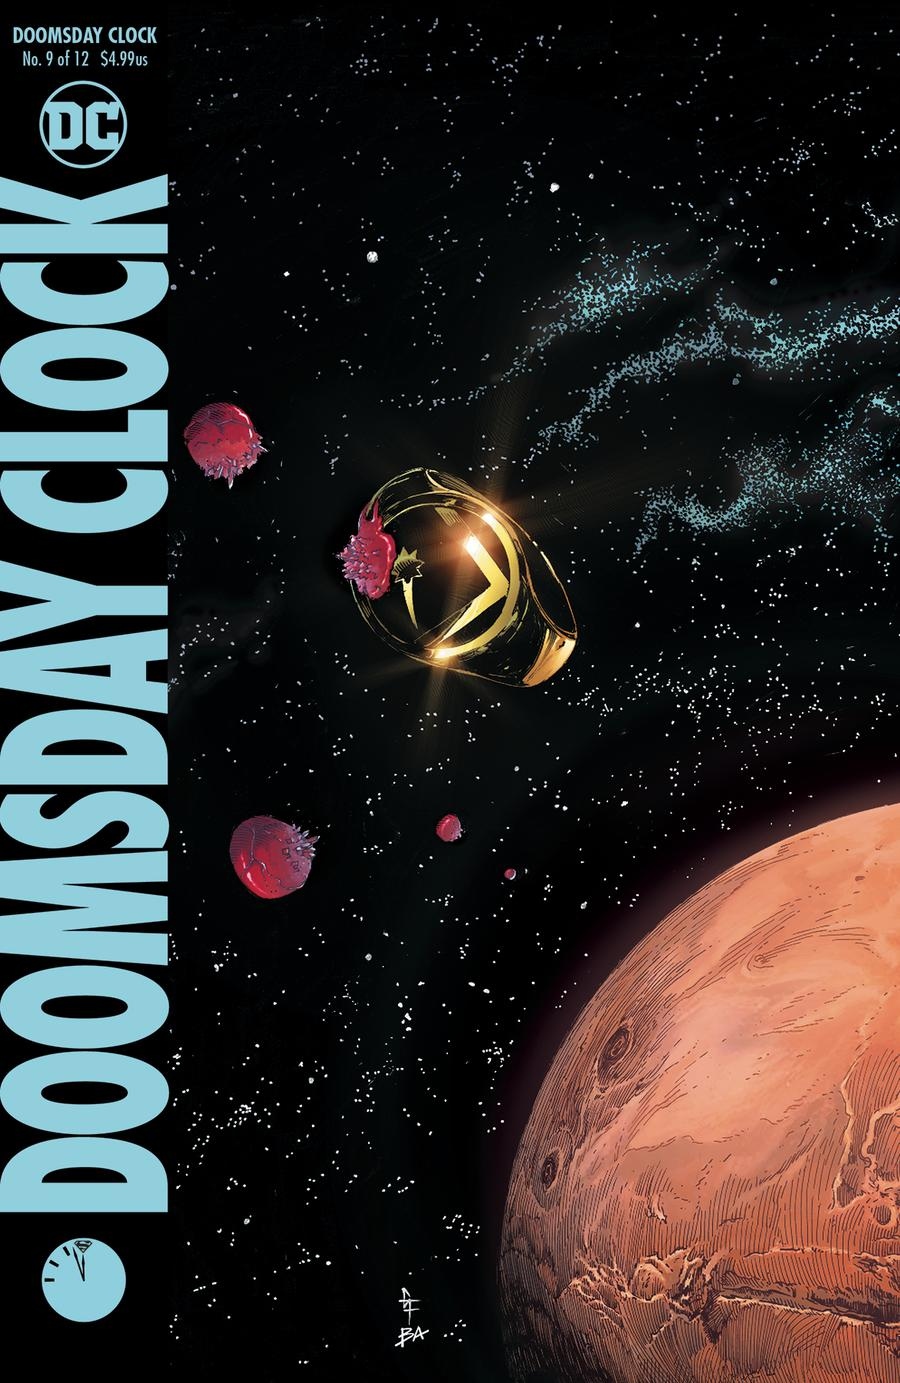 The Long Boxers - Doomsday Clock